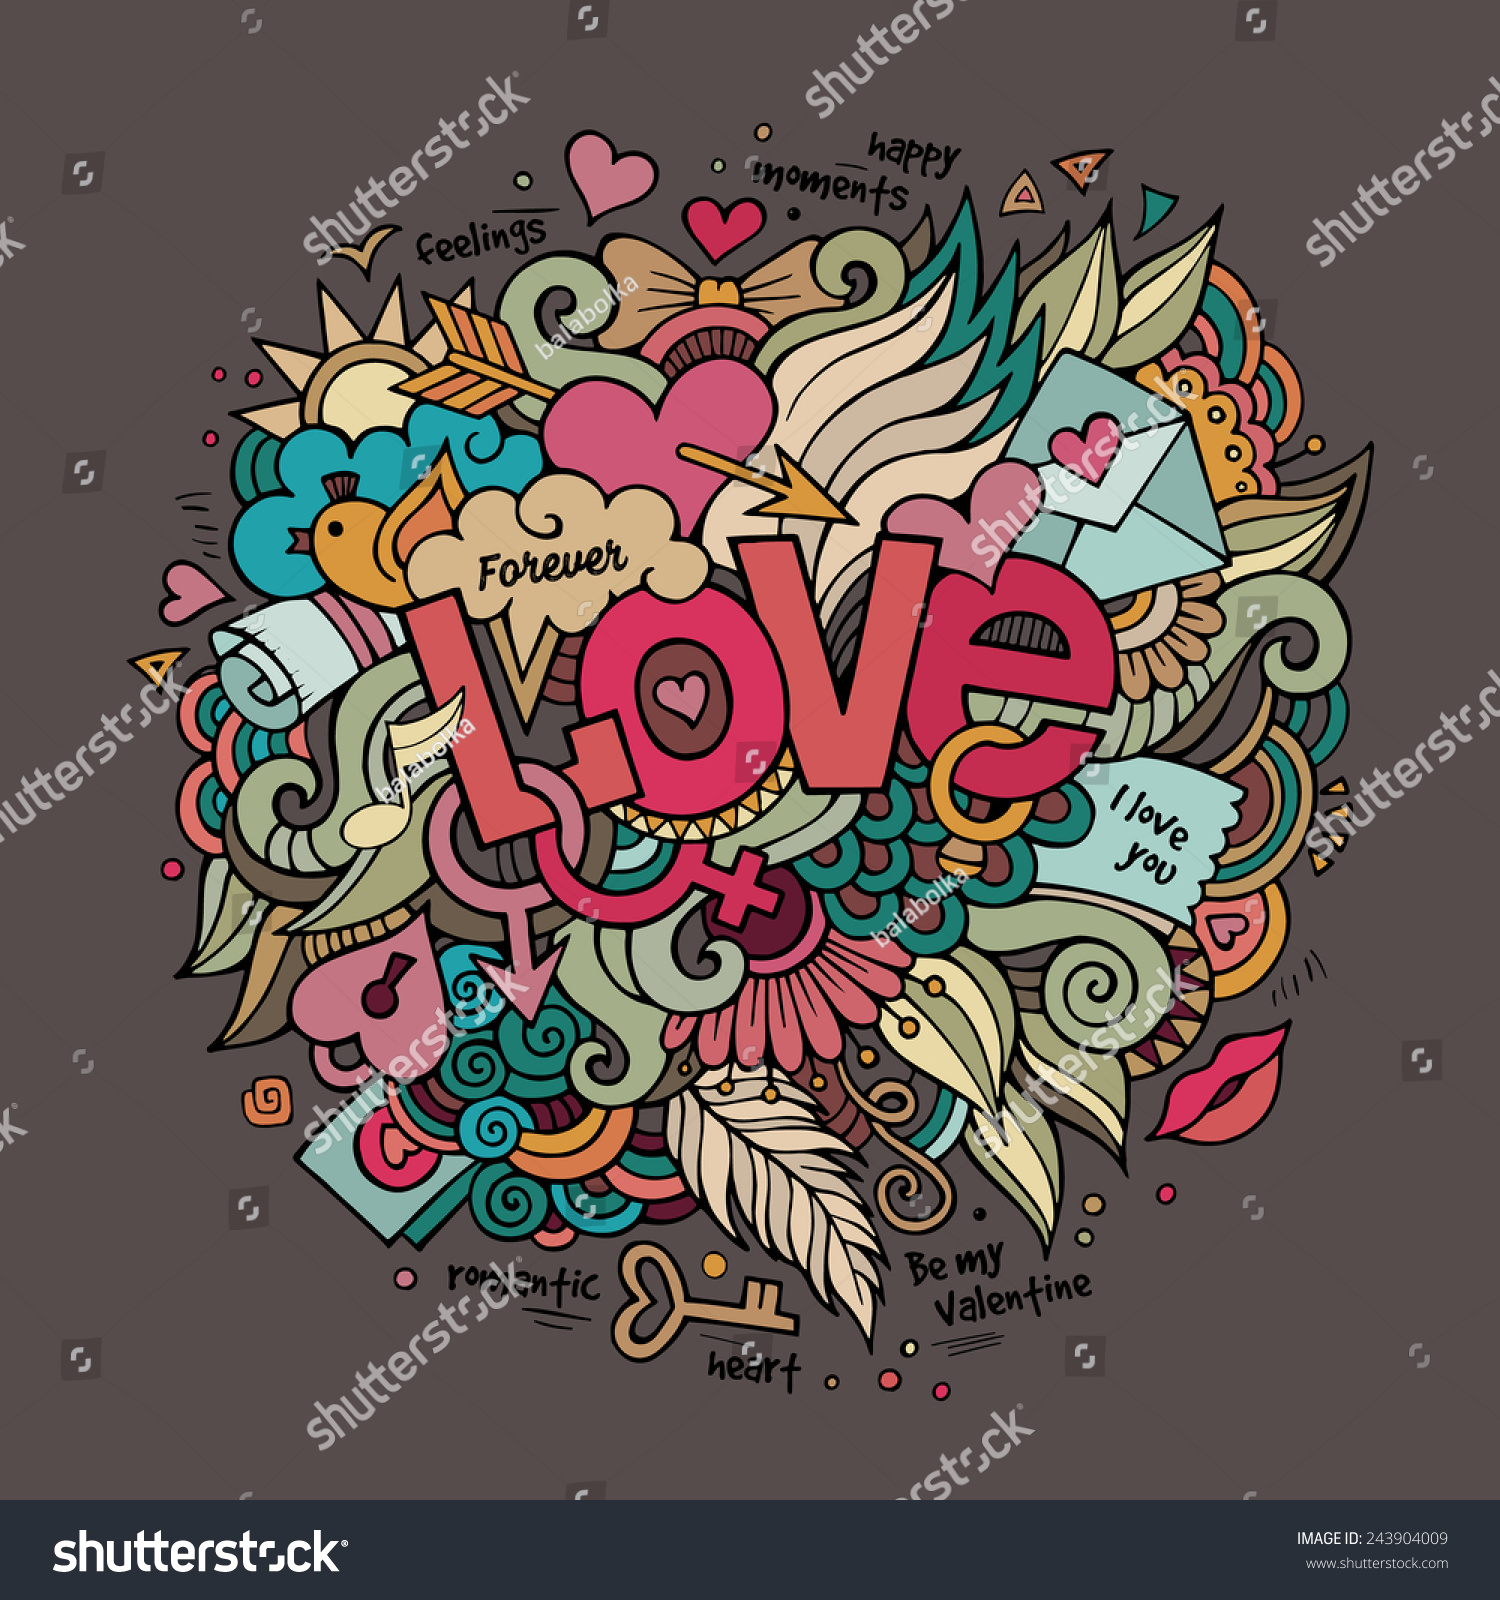 Stock vector music hand lettering and doodles elements - Love Hand Lettering And Doodles Elements Vector Illustration